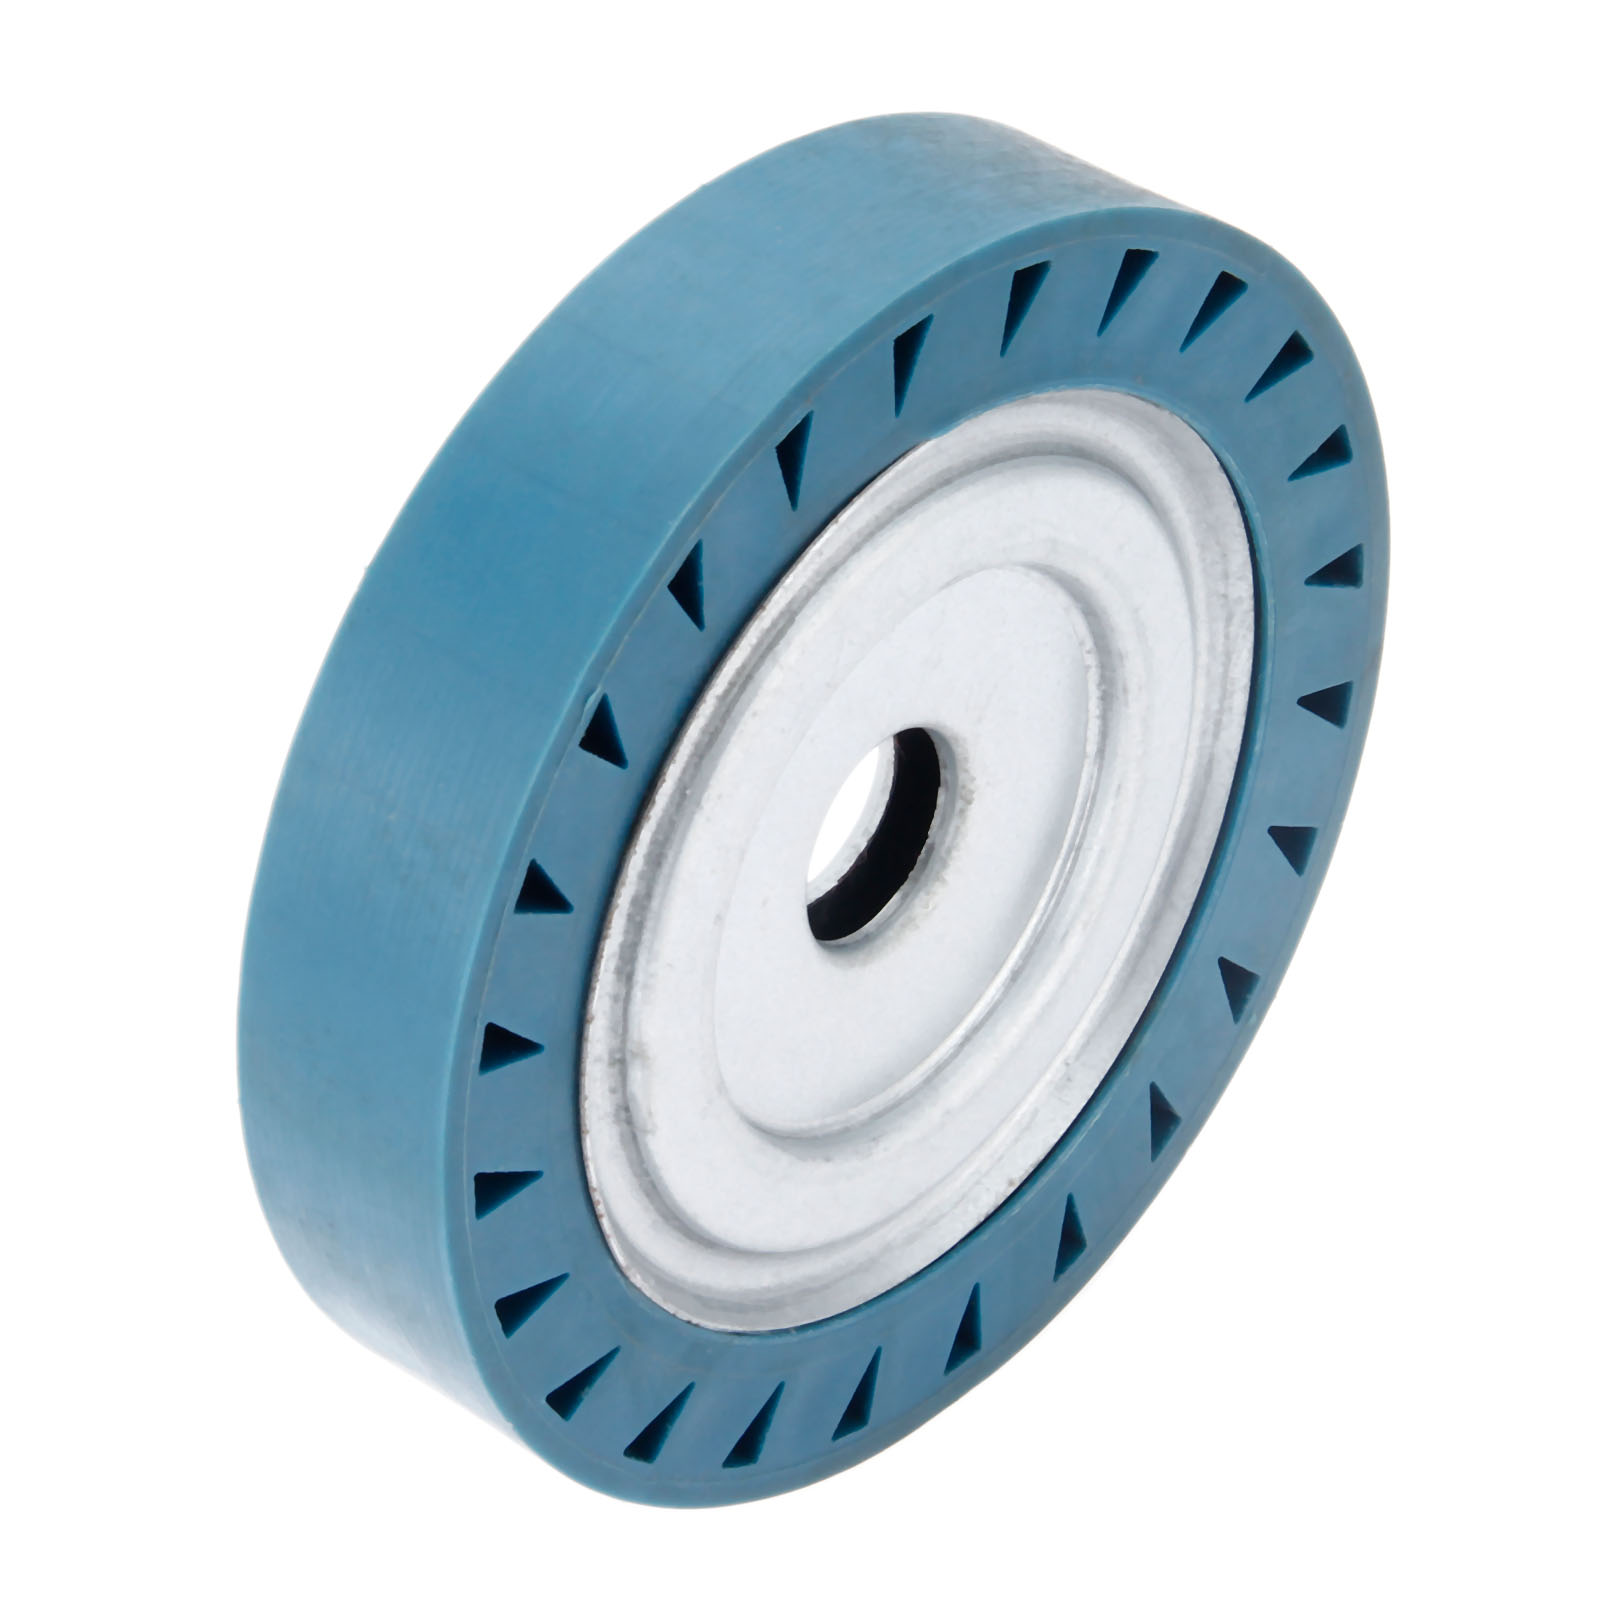 DRELD 150*30*25mm Solid Rubber Contact Wheel For Belt Grinder Sander Polishing Chamfering Grinding Abrasive